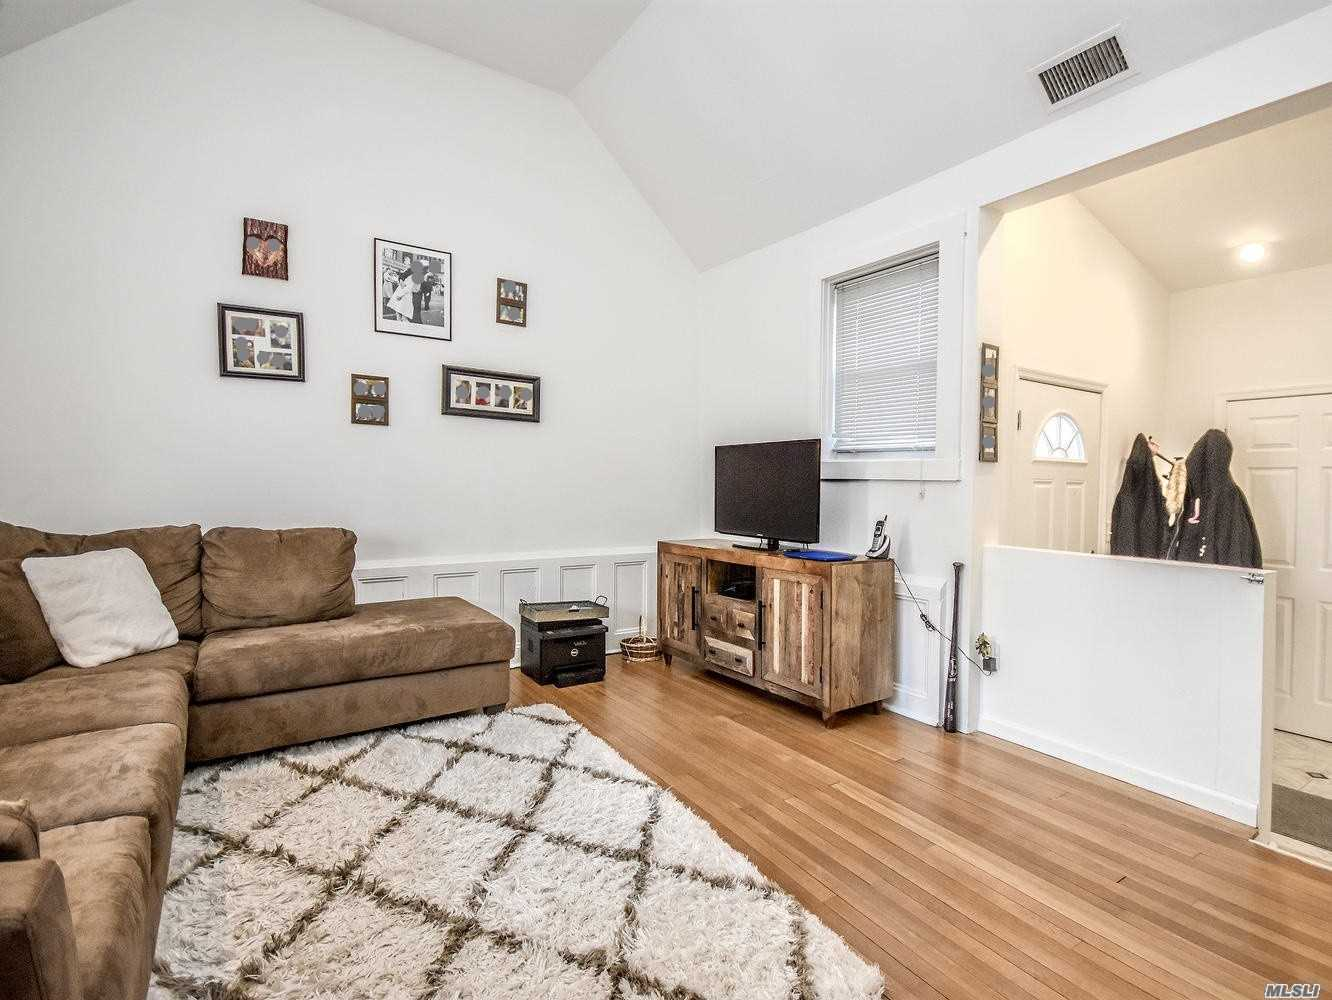 Utilities Included. Wood Burning Fireplace. Brand New Stove, Refrigerator, Washer And Dryer. New Deck. Huge Kitchen. All Hardwood Floors.Central Air. Outdoor Parking For 2 Cars. Absolutely No Pets.